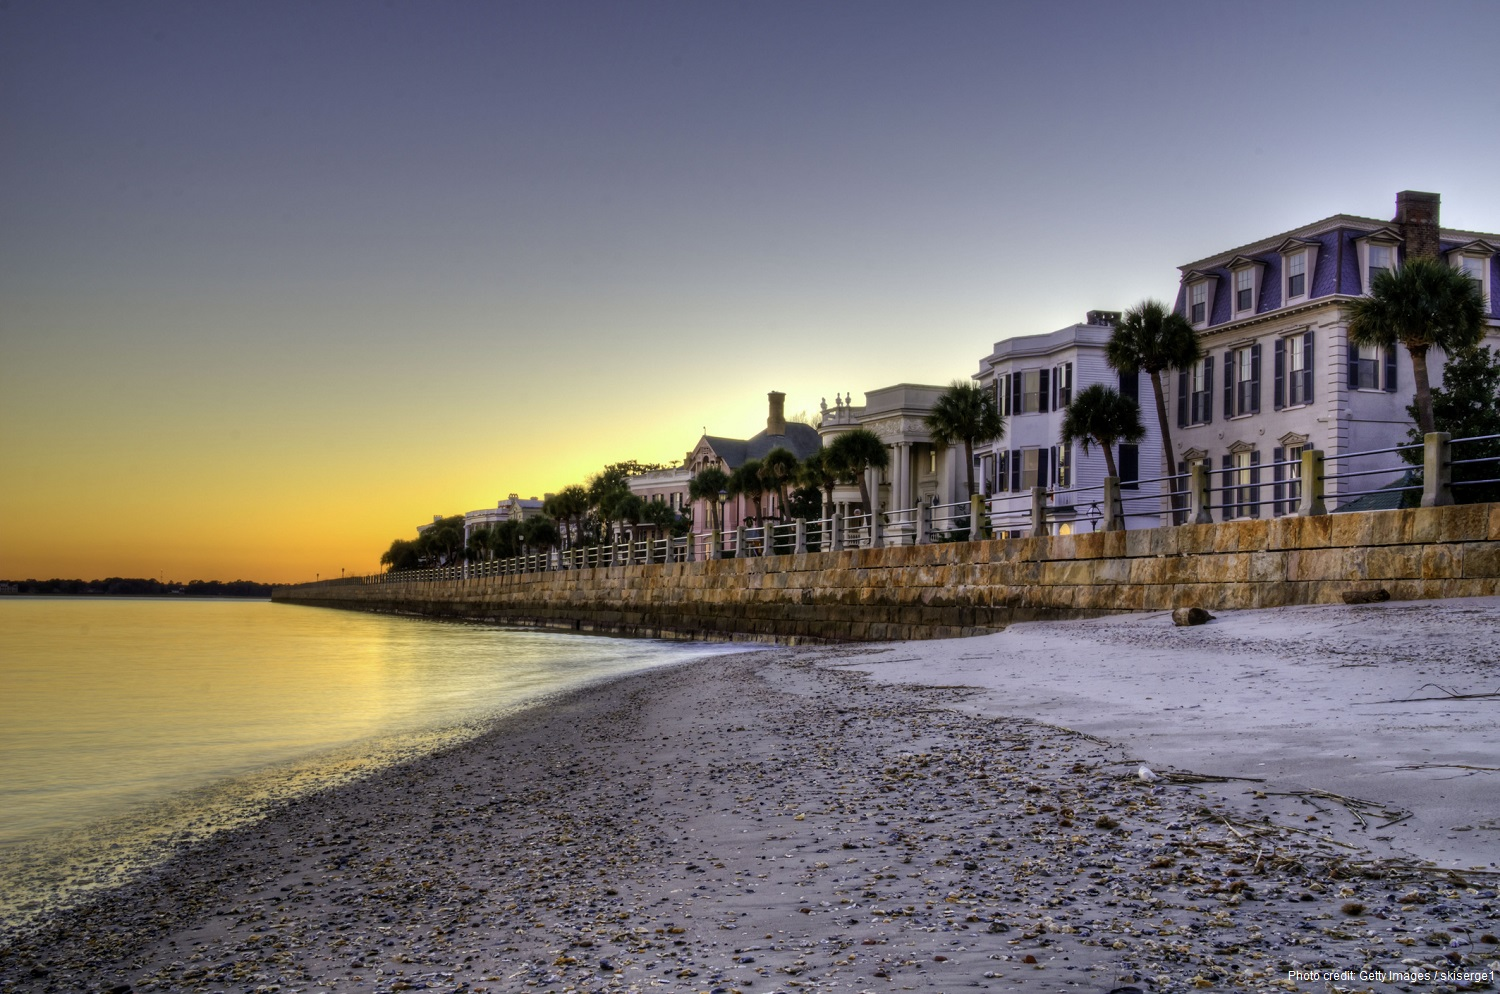 Charleston, South Carolina is home to some of the most beautiful homes and ocean views.